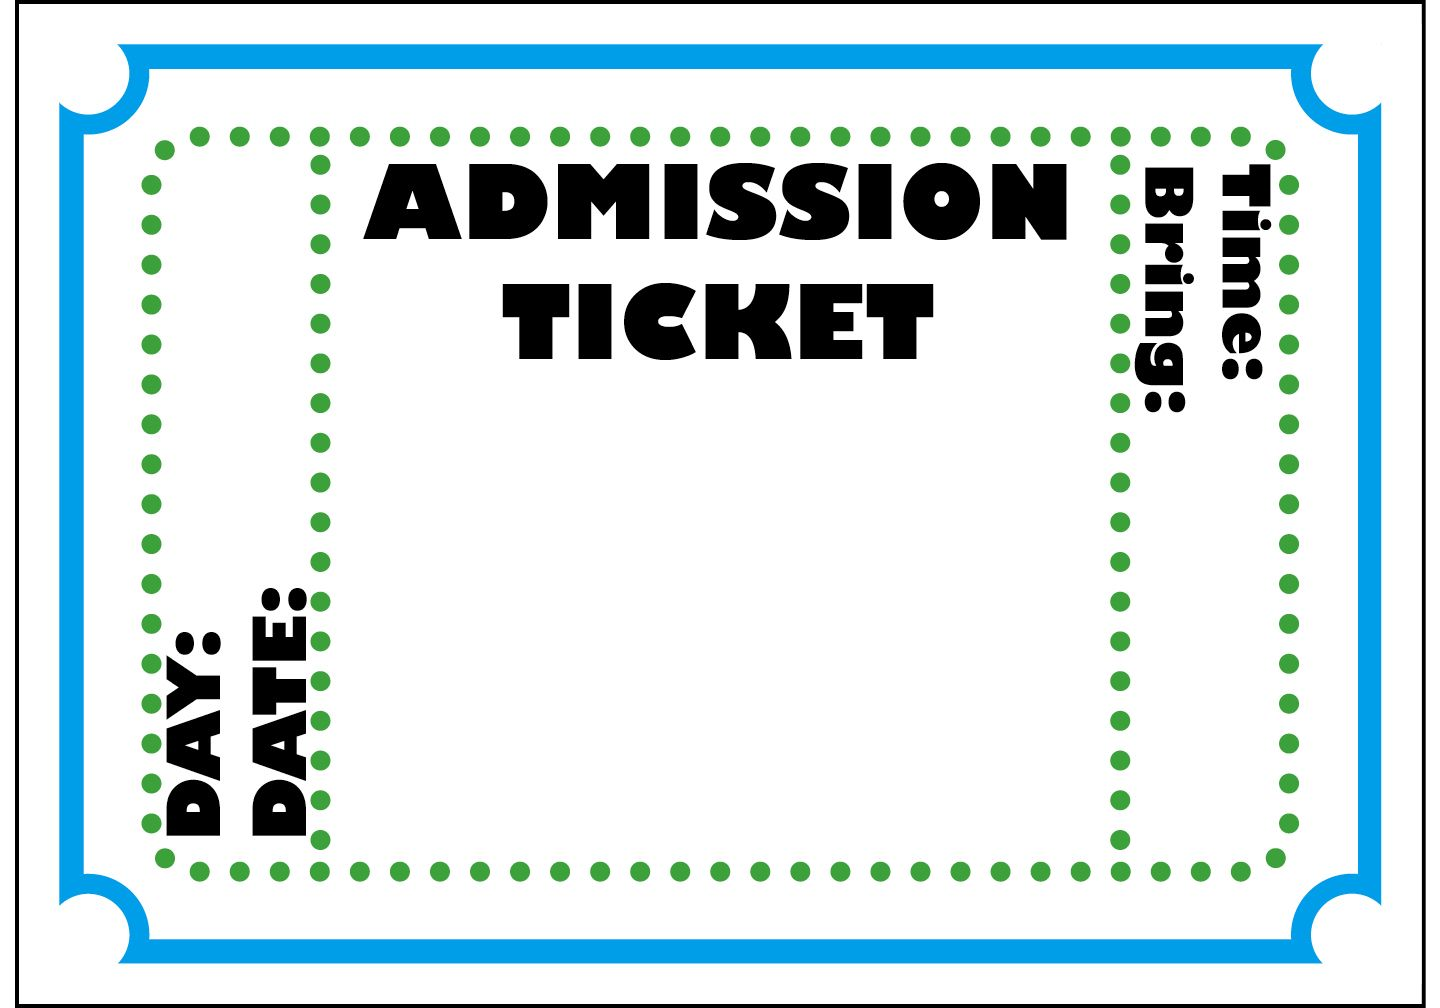 Mormon Share Admission Ticket Ticket Template Ticket Template Printable Admit One Ticket